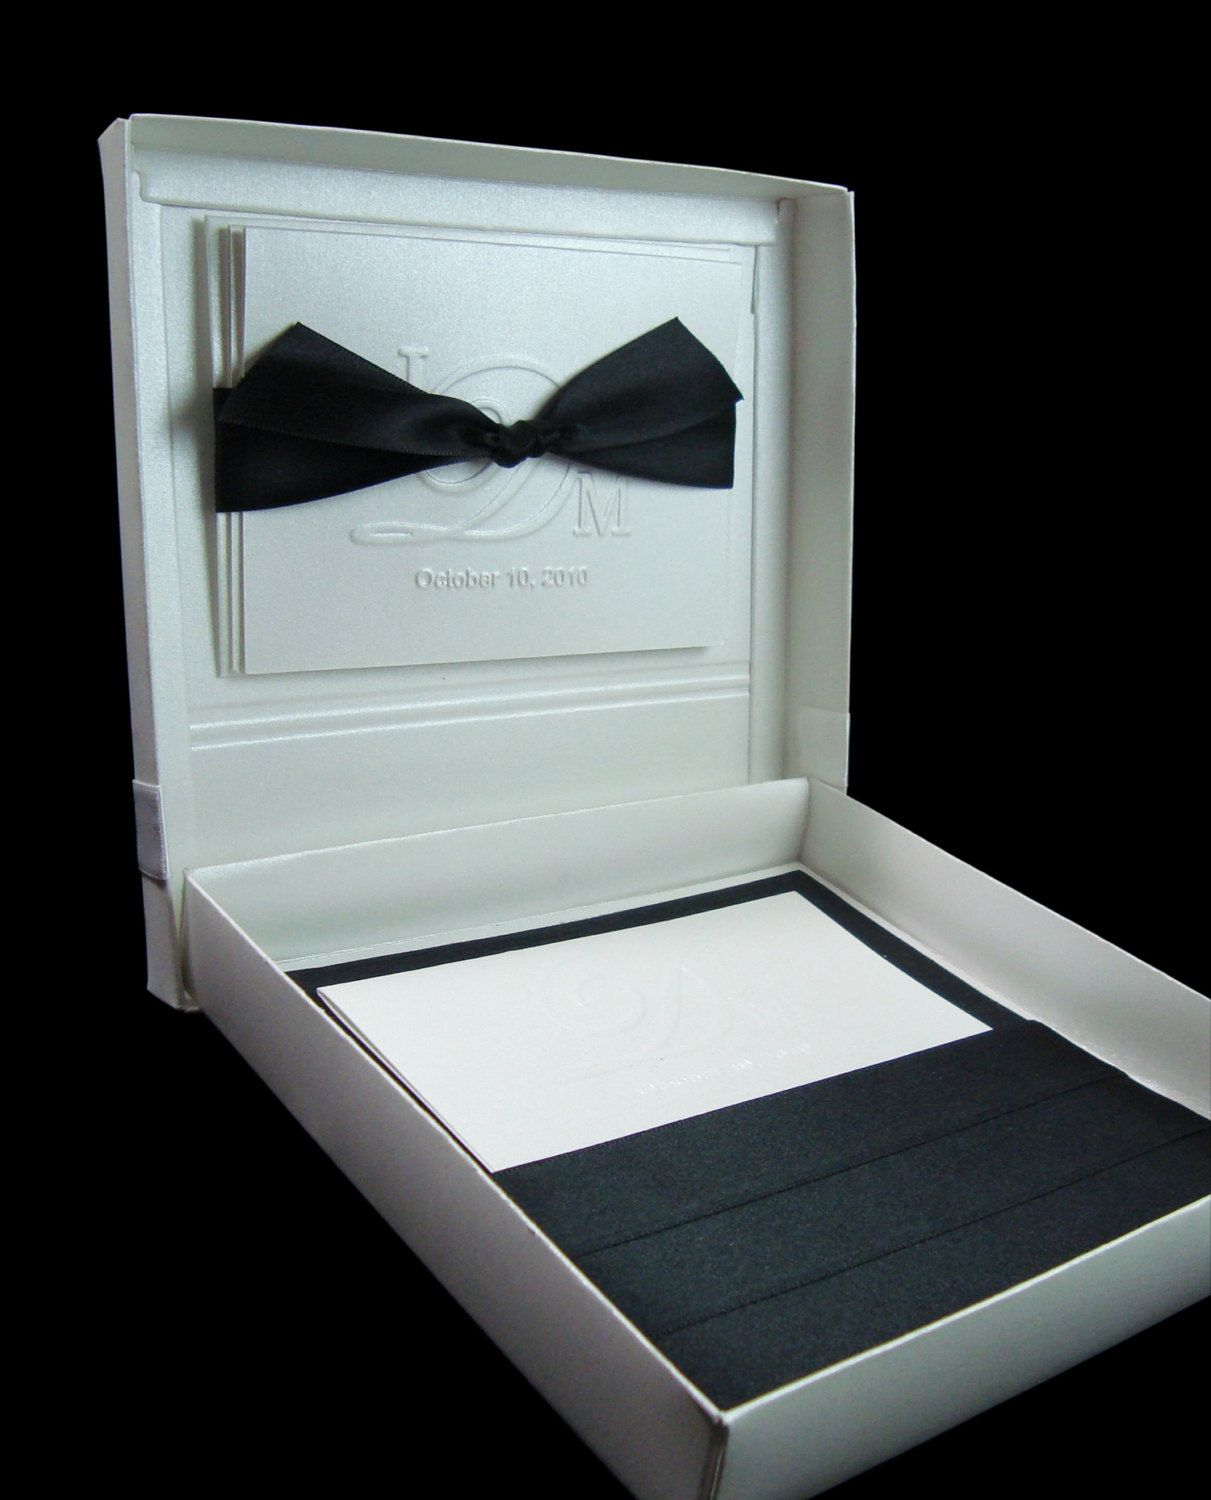 Boxed Couture Wedding Invitations Invite Invitation Black White Tie Set Of 100: Black Tie Wedding Invitation Box At Websimilar.org